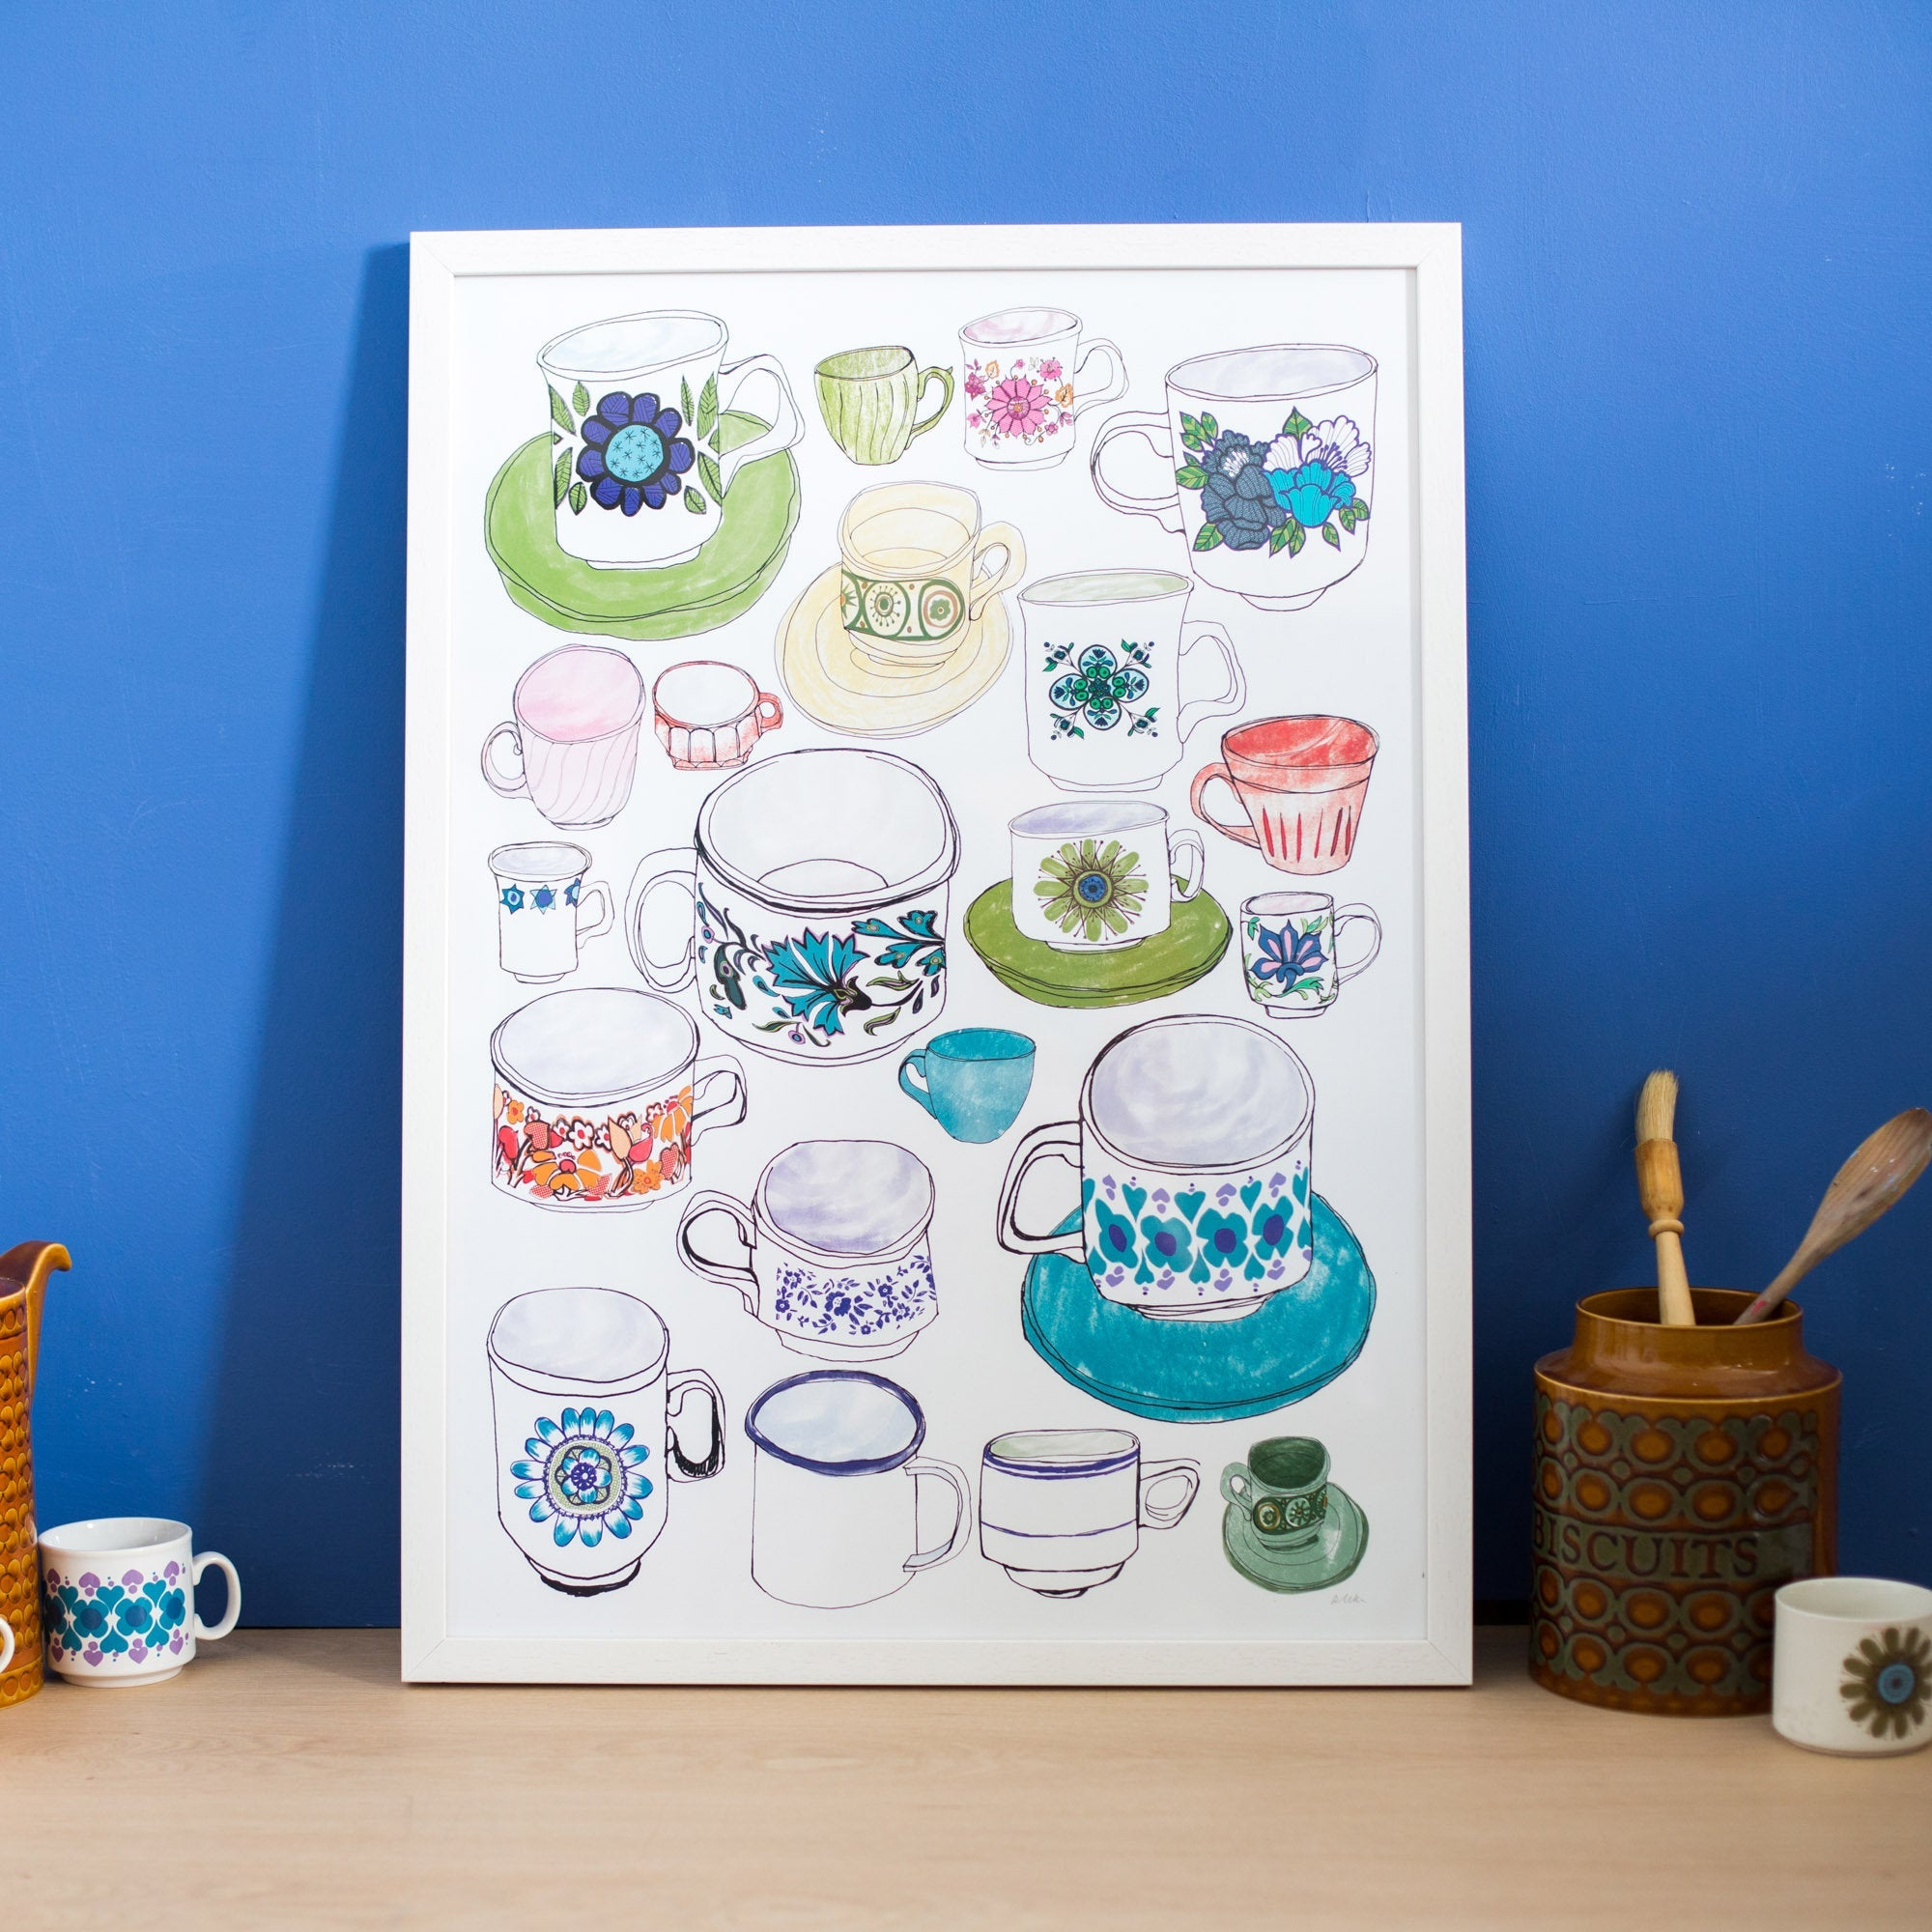 'Fill Your Cups' Print Poster